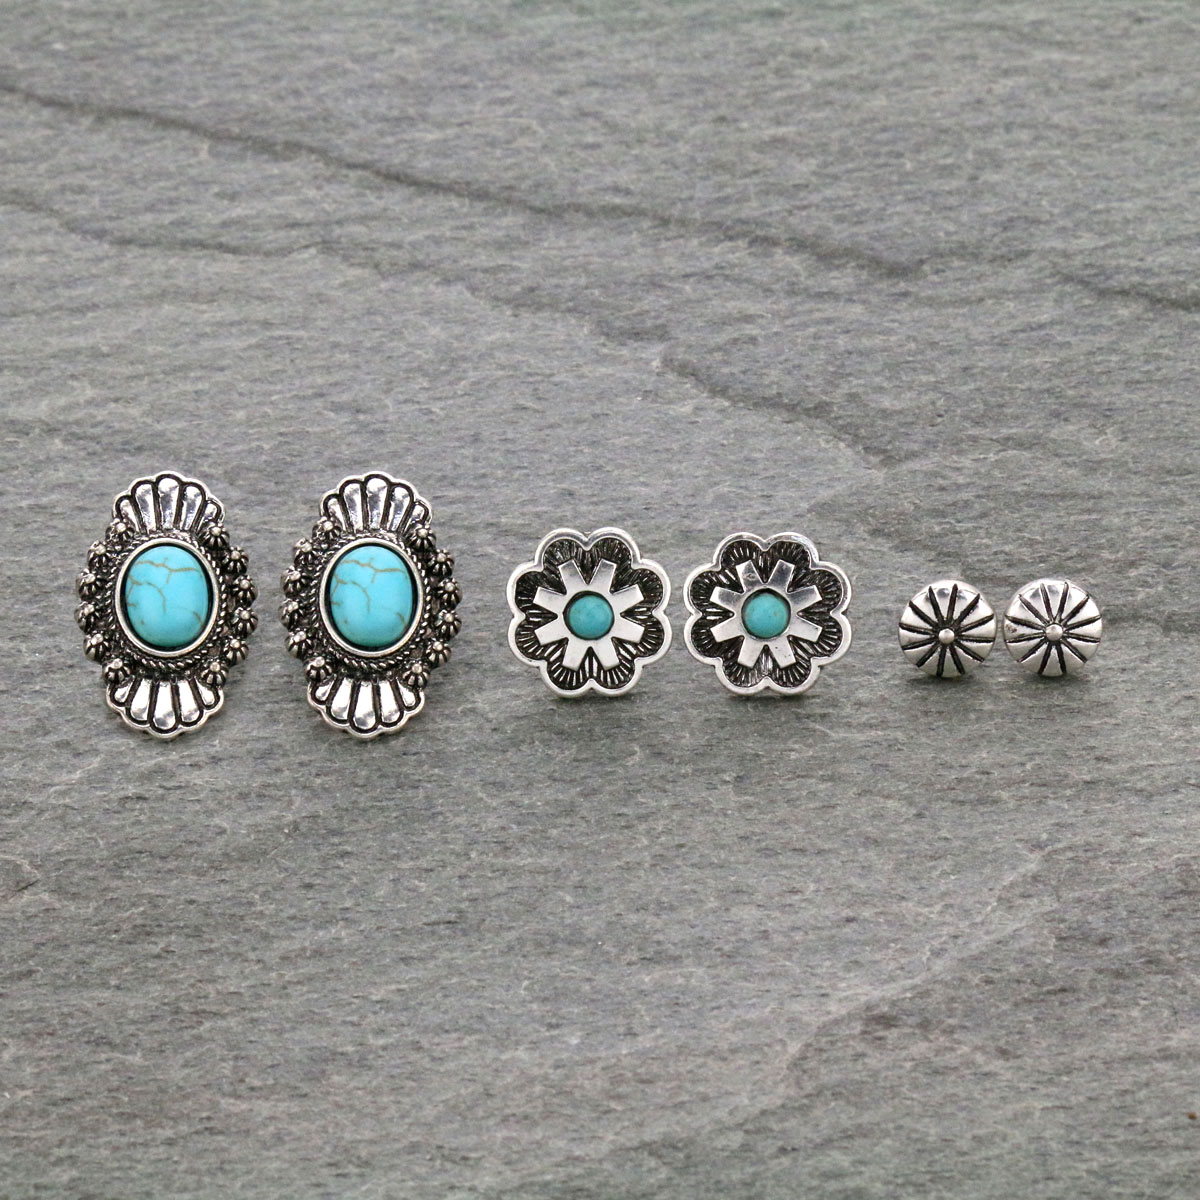 3 Pair Western Turquoise Post Earrings Set-SE1119/SBTQ